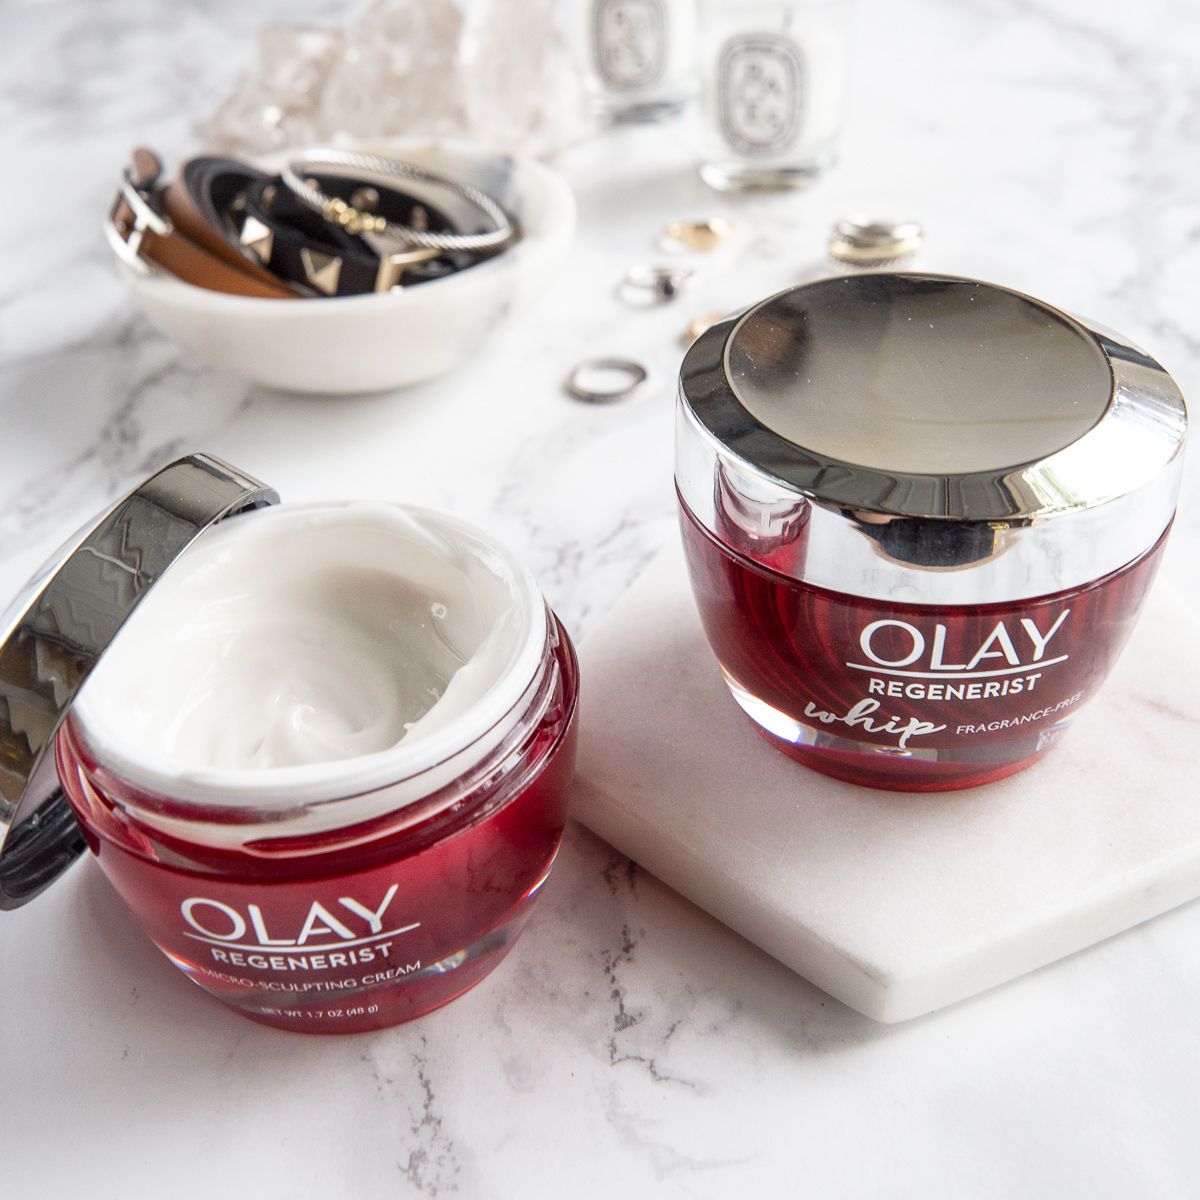 Nathalie Martin, HOW TO CHOOSE THE RIGHT MOISTURIZER FOR YOUR SKIN TYPE FEAT. OLAY_9547.jpg